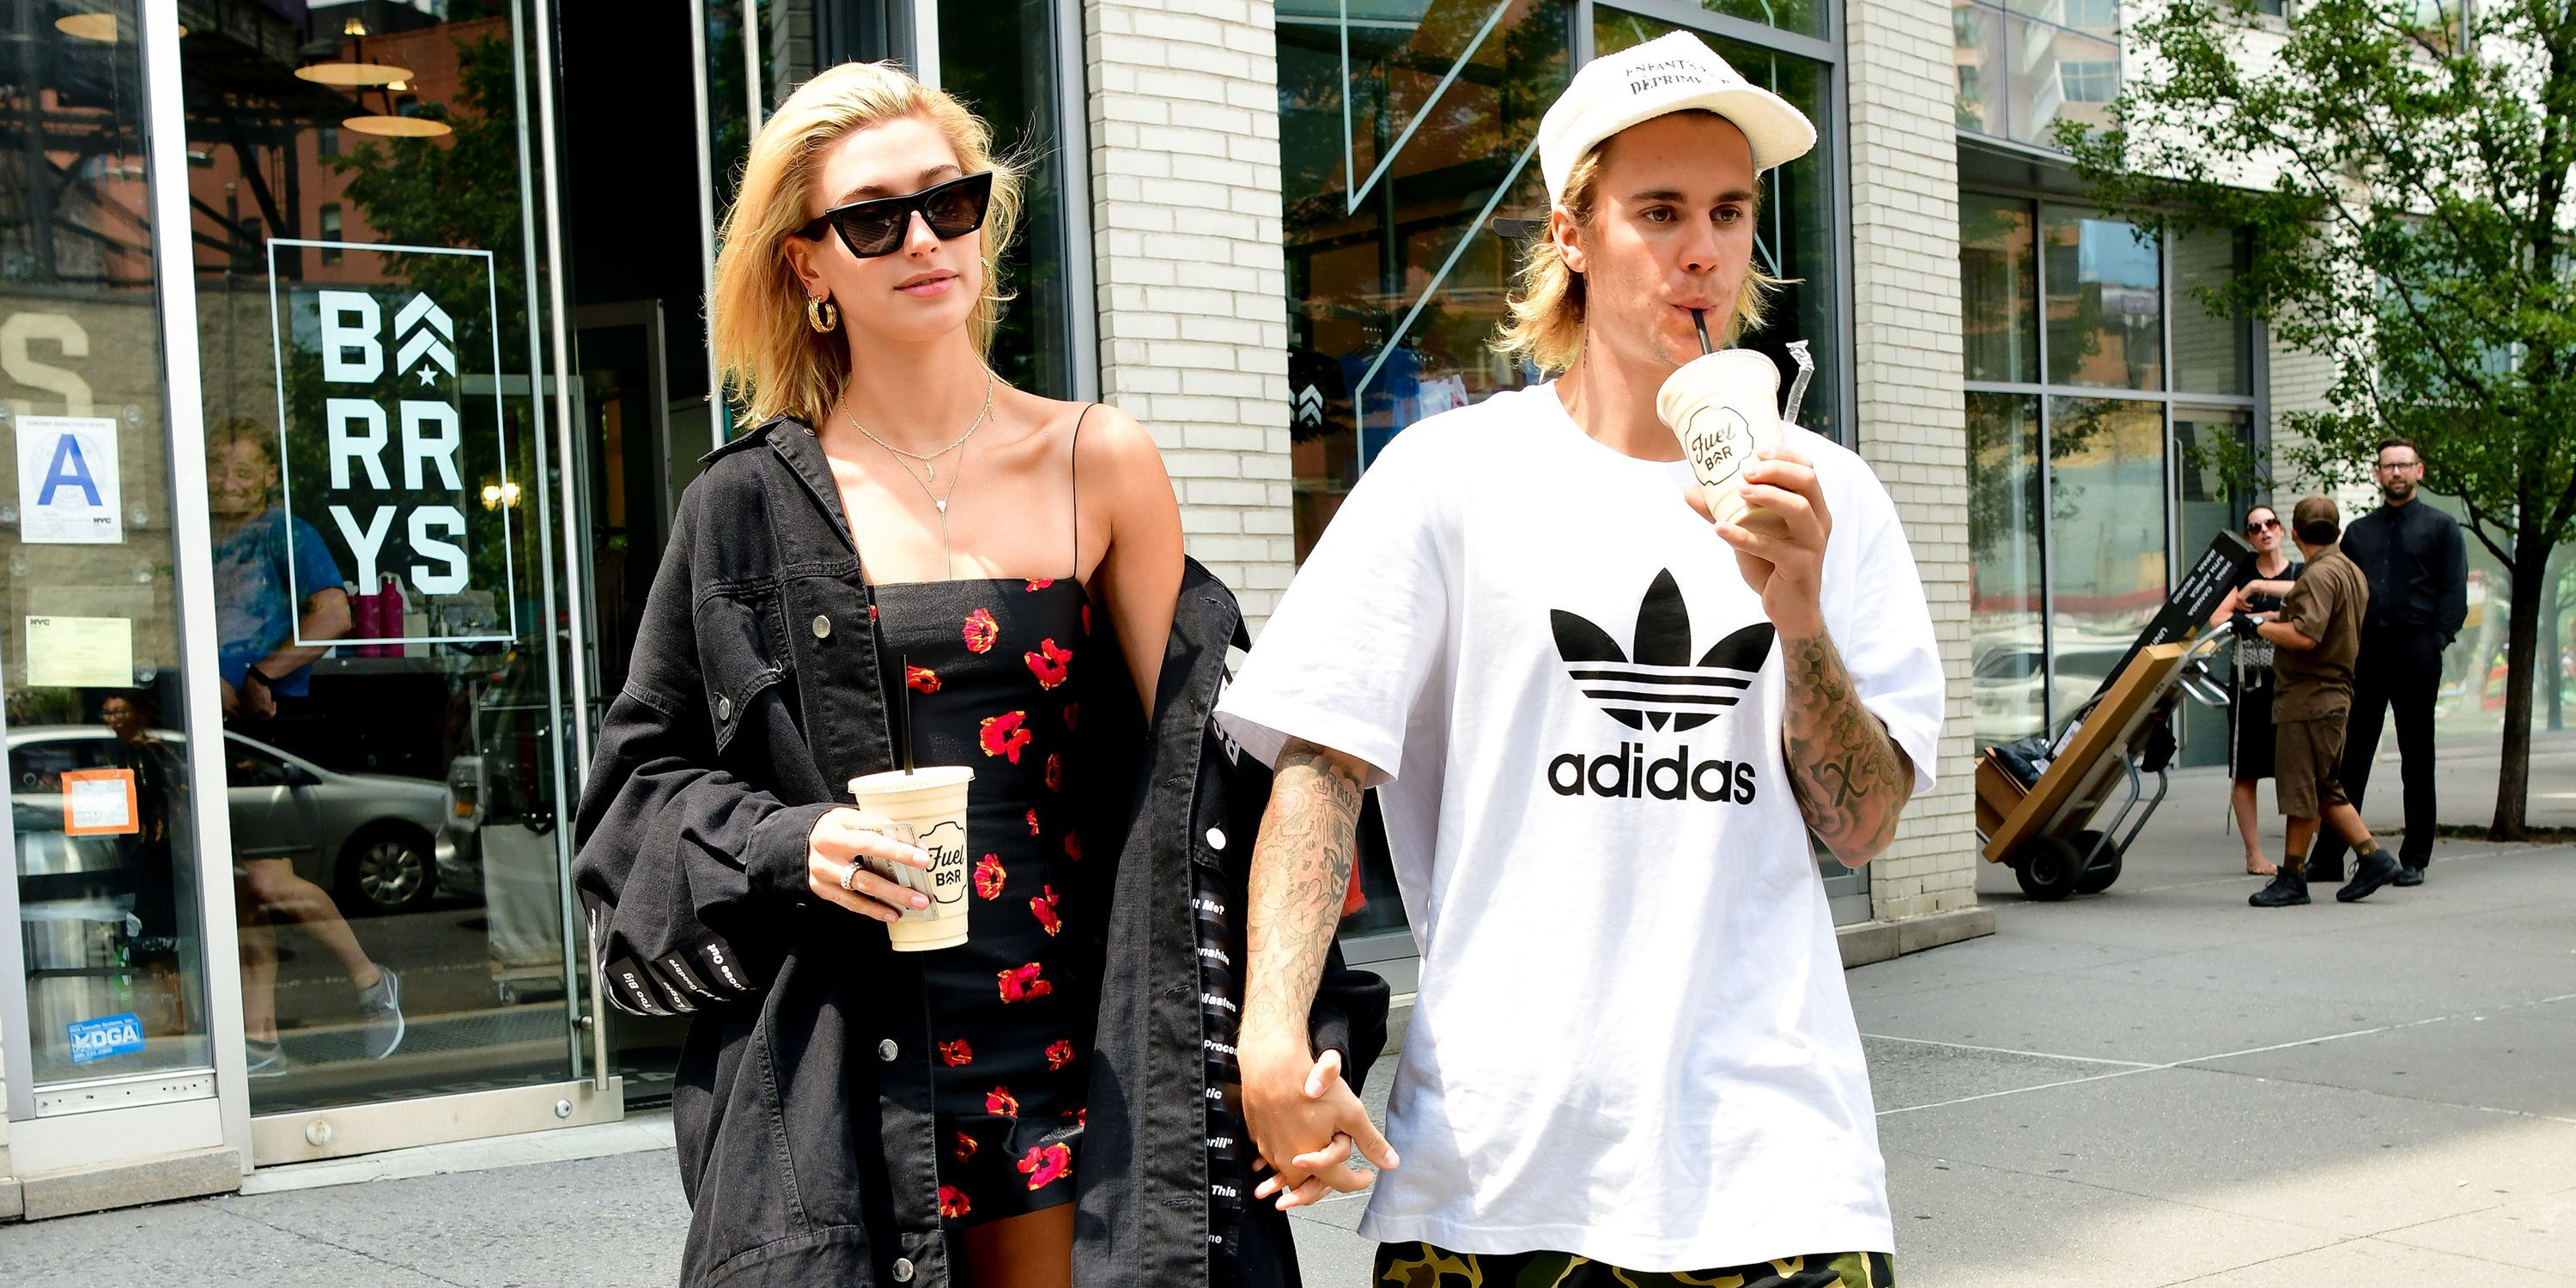 Is justin bieber dating anyone july 2019